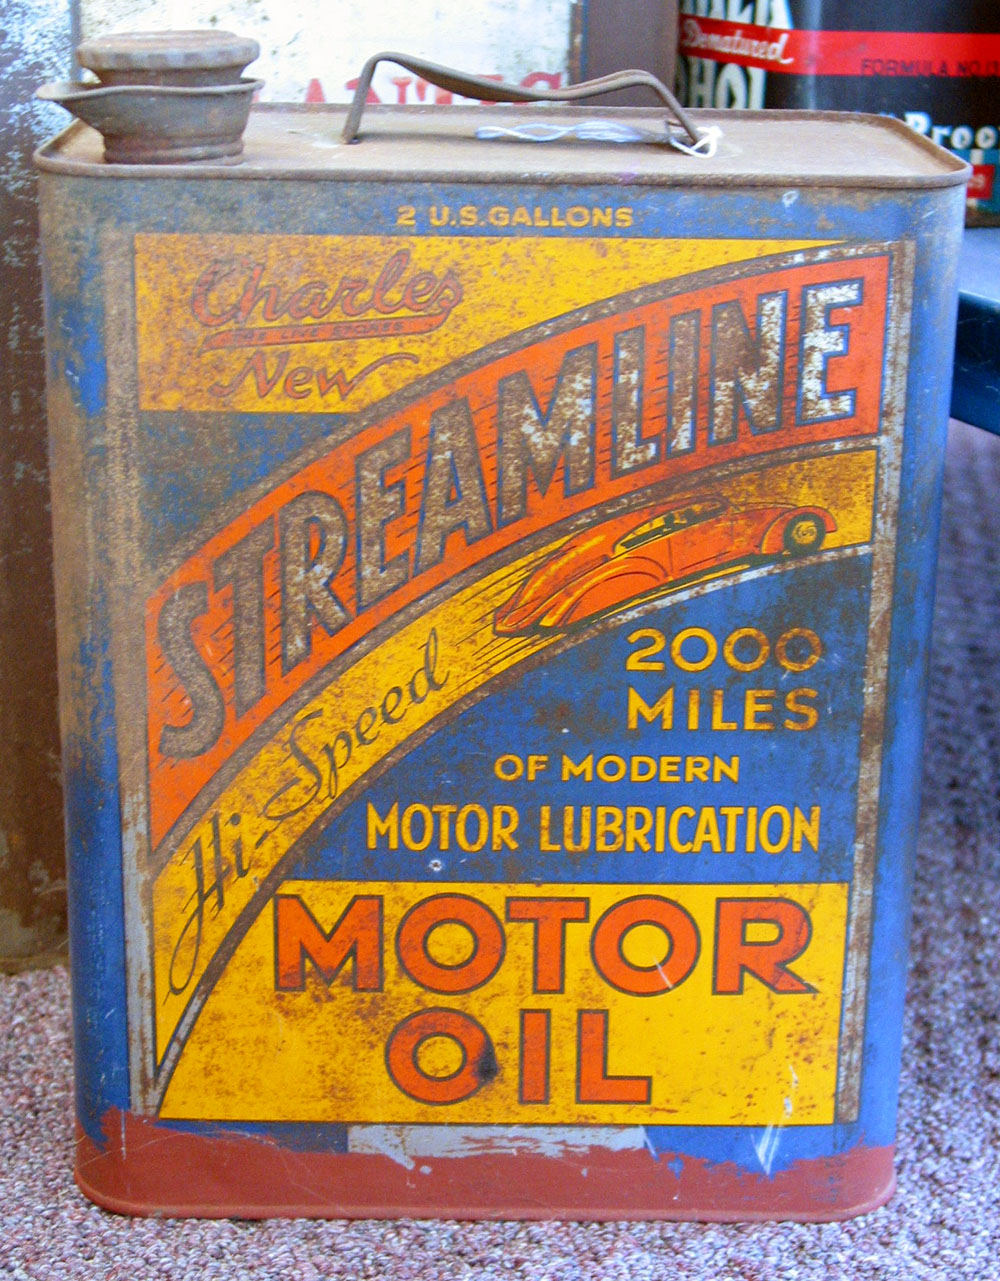 Streamline oil can.